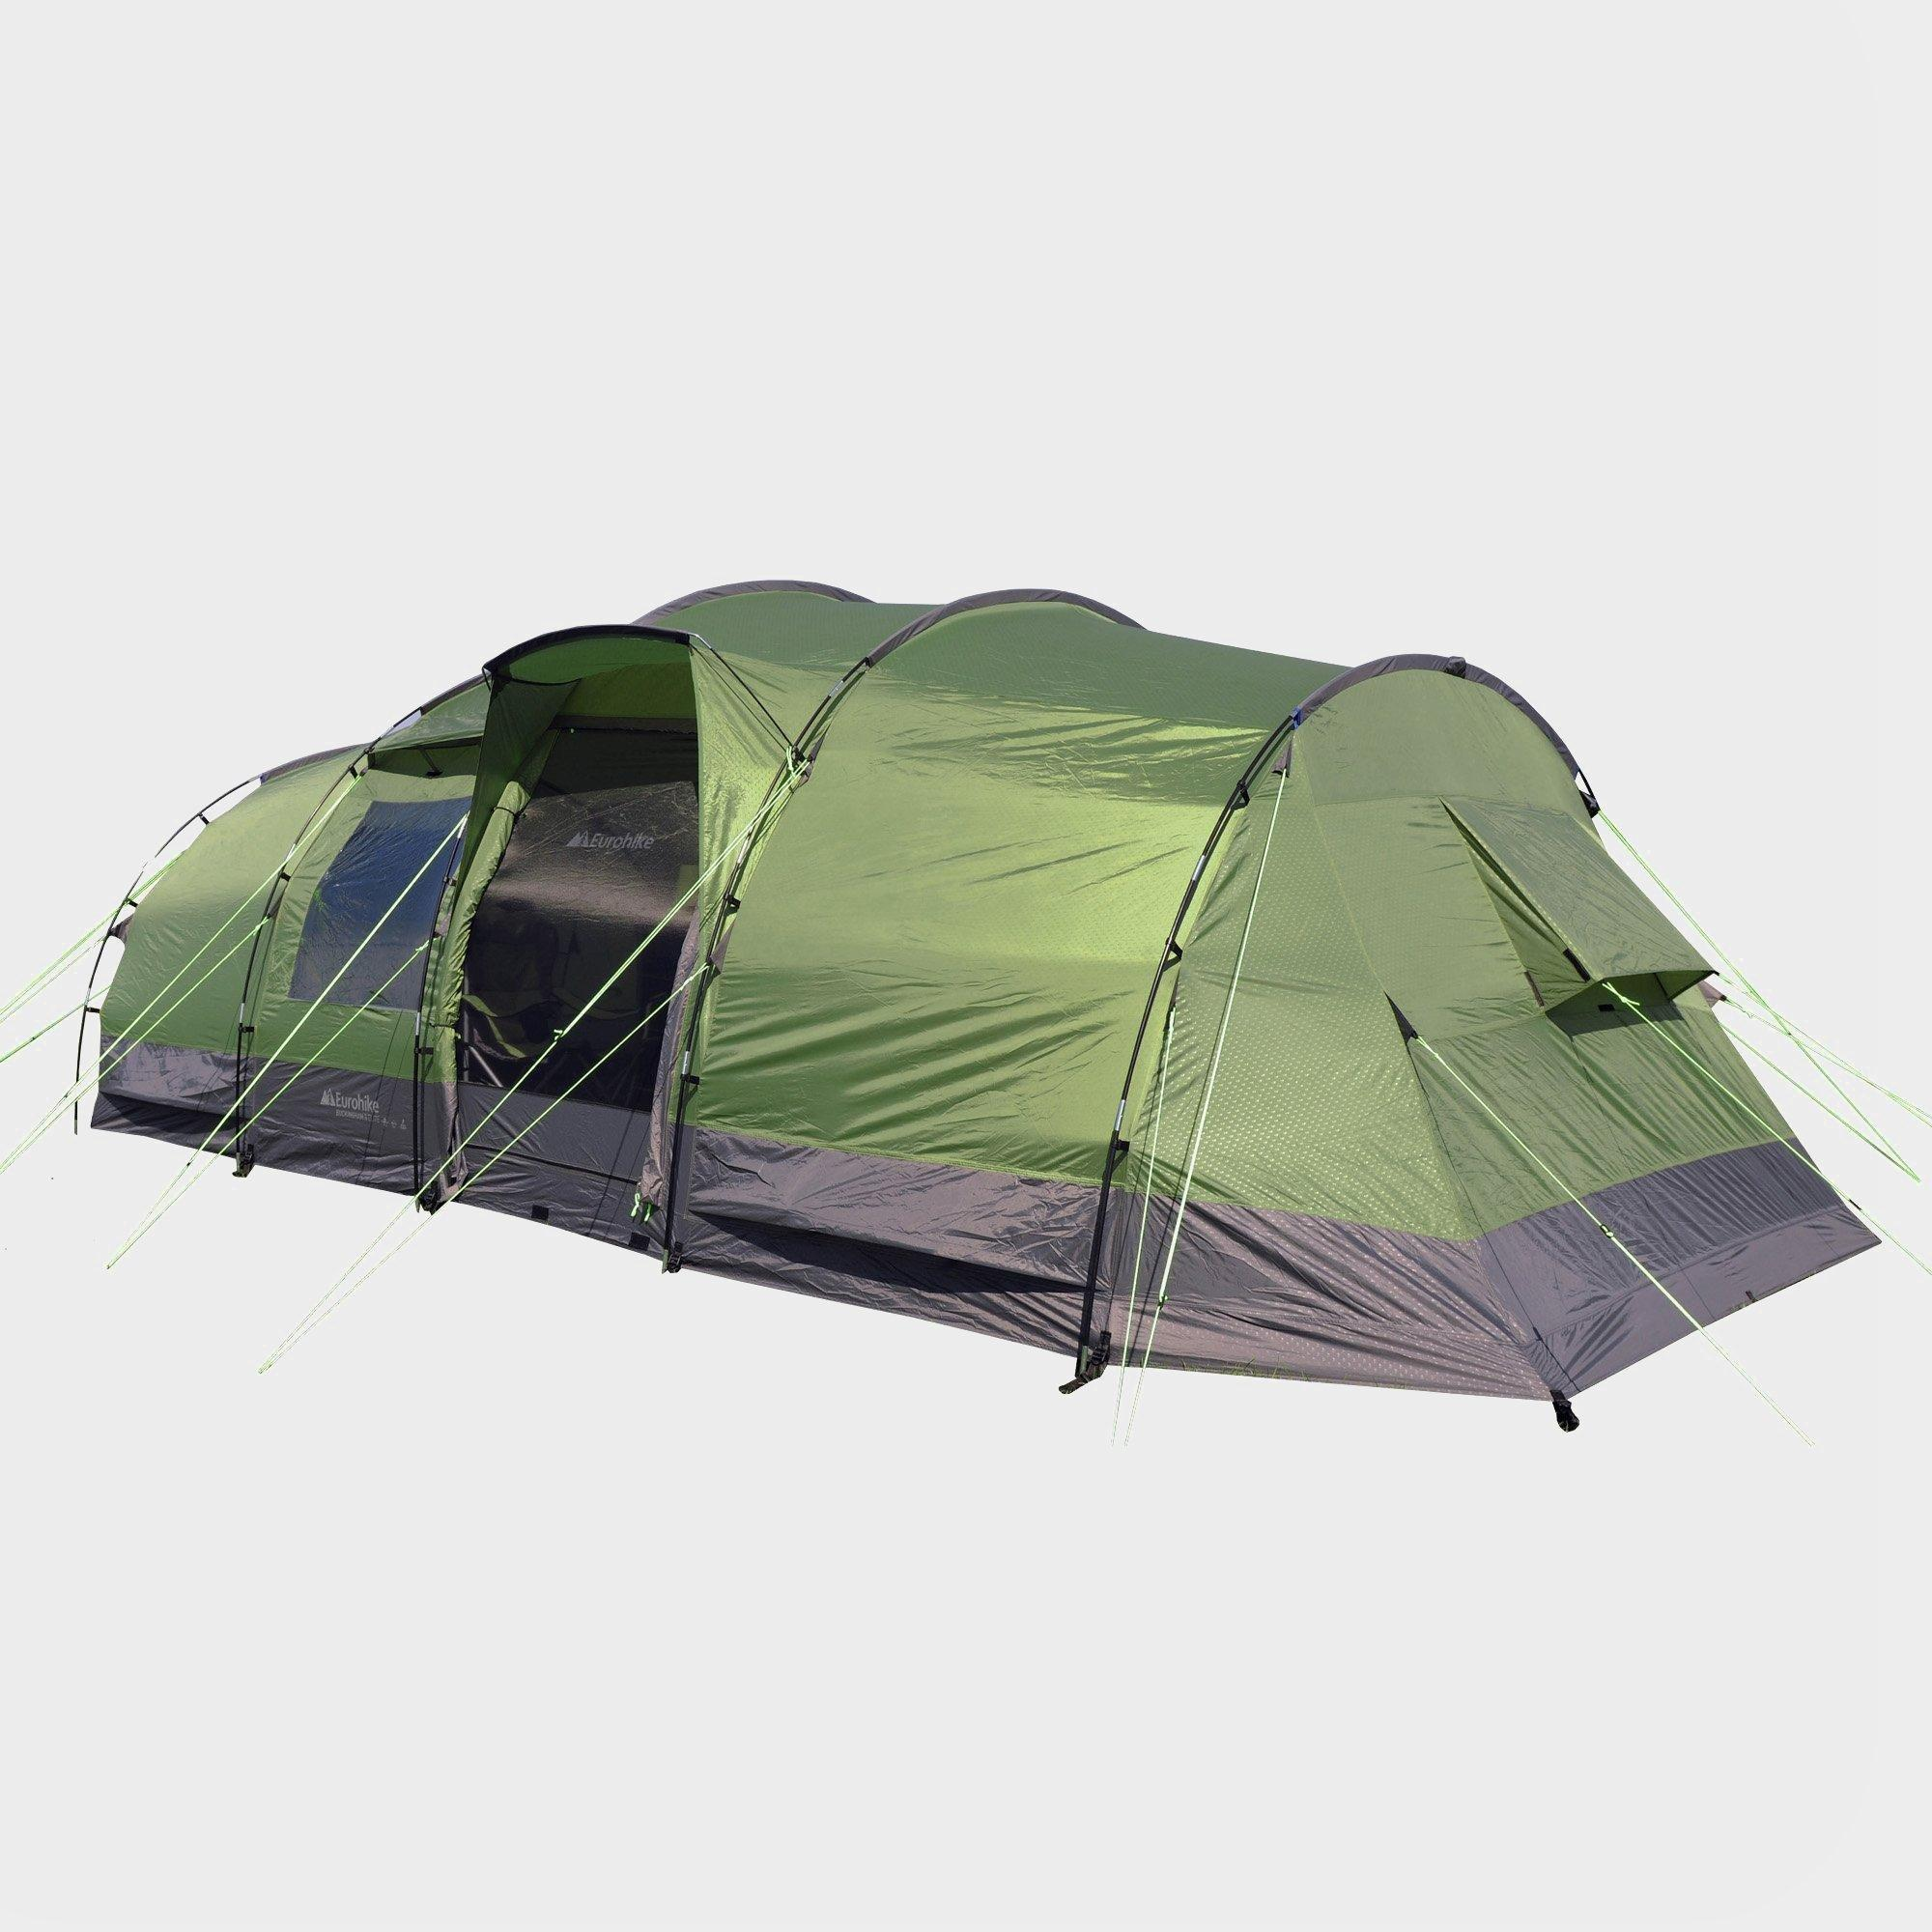 2 3 Man Tents From 30 Delivered 25 Off All Eurohike And & Eurohike 3 Man Tent Millets - Best Tent 2018